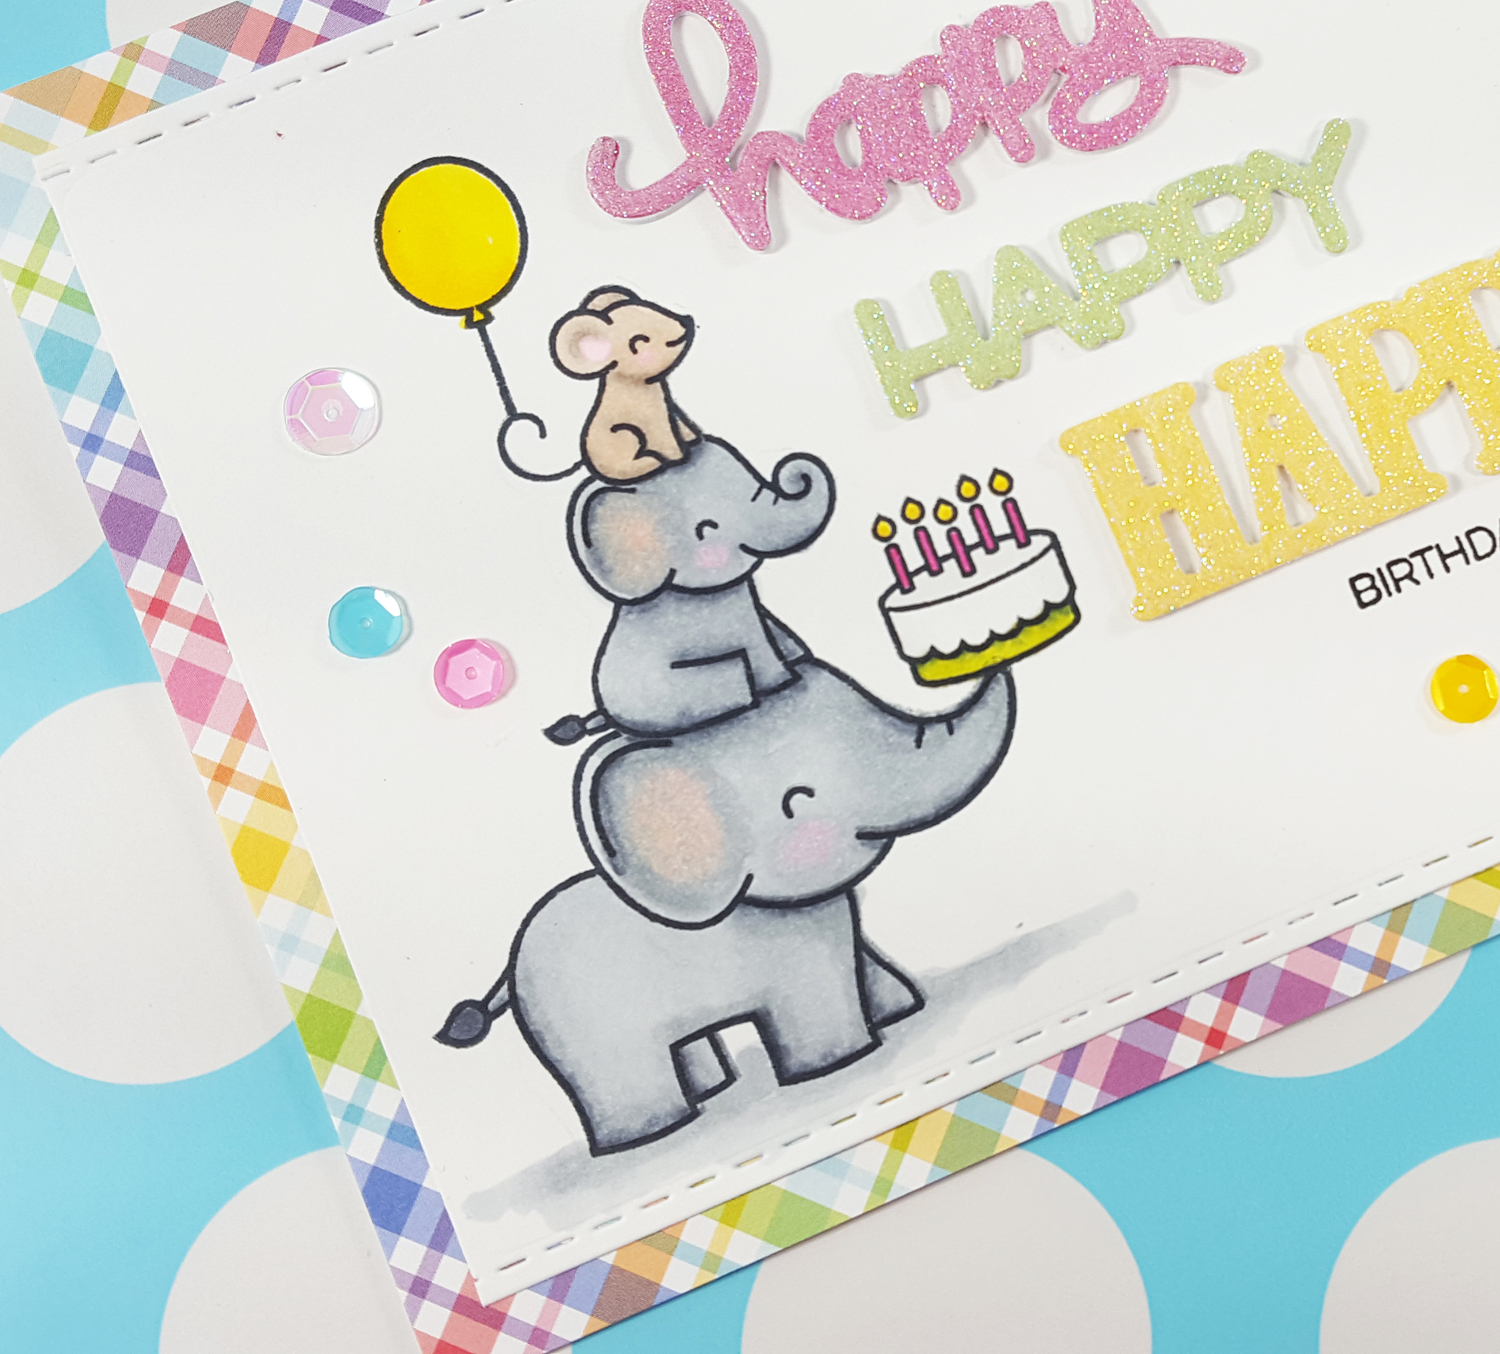 Elphie Selfie Birthday Card with Lawn Fawn & Spectrum Noir Markers - Detail